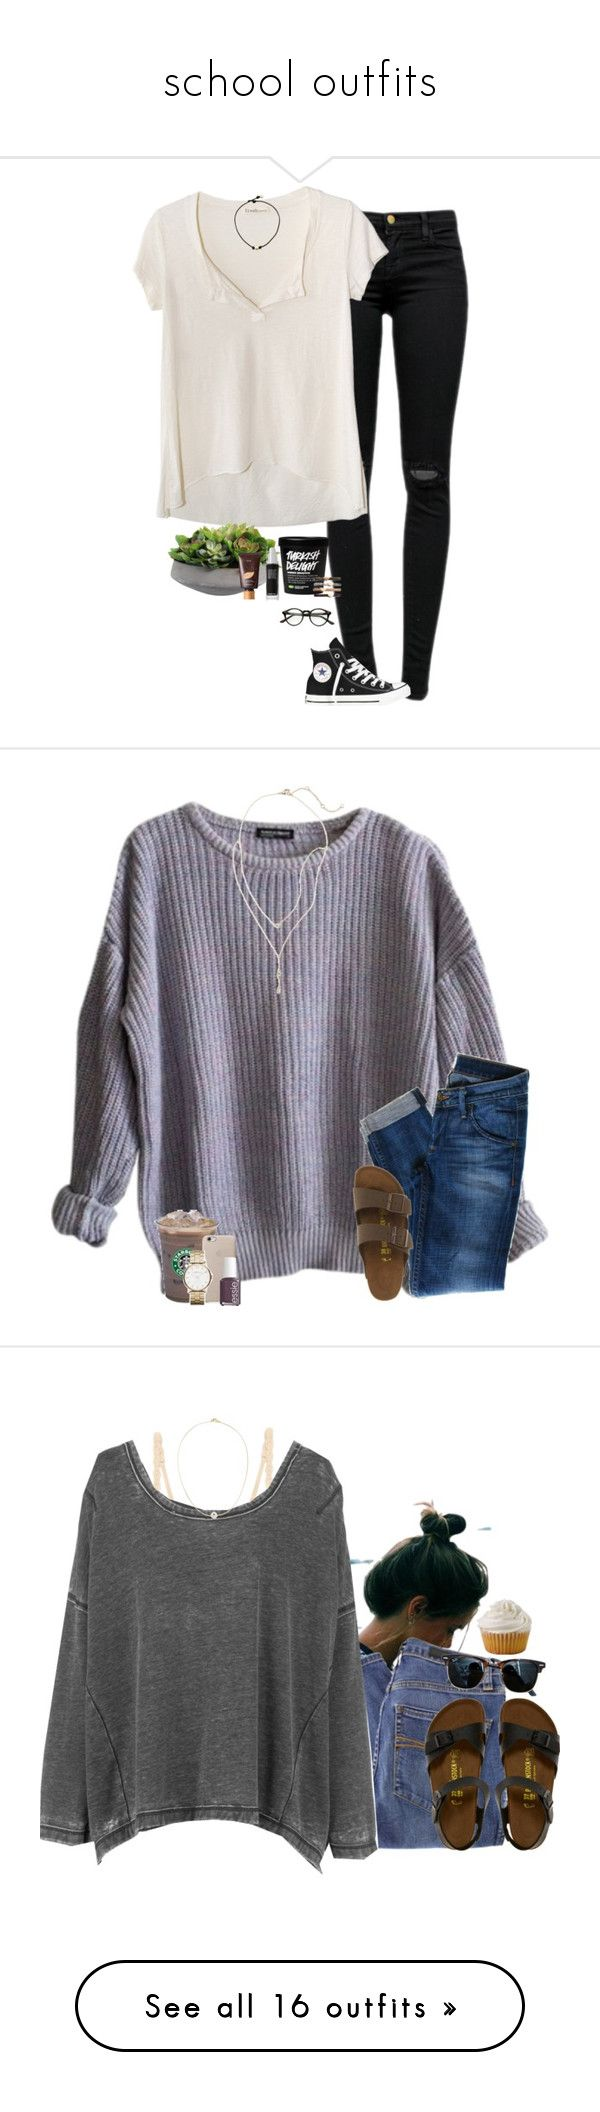 """""""school outfits"""" by southerngirl03 ❤ liked on Polyvore featuring J Brand, Fresh Laundry, Converse, tarte, Make, Madewell, American Apparel, Hudson Jeans, Birkenstock and BP."""